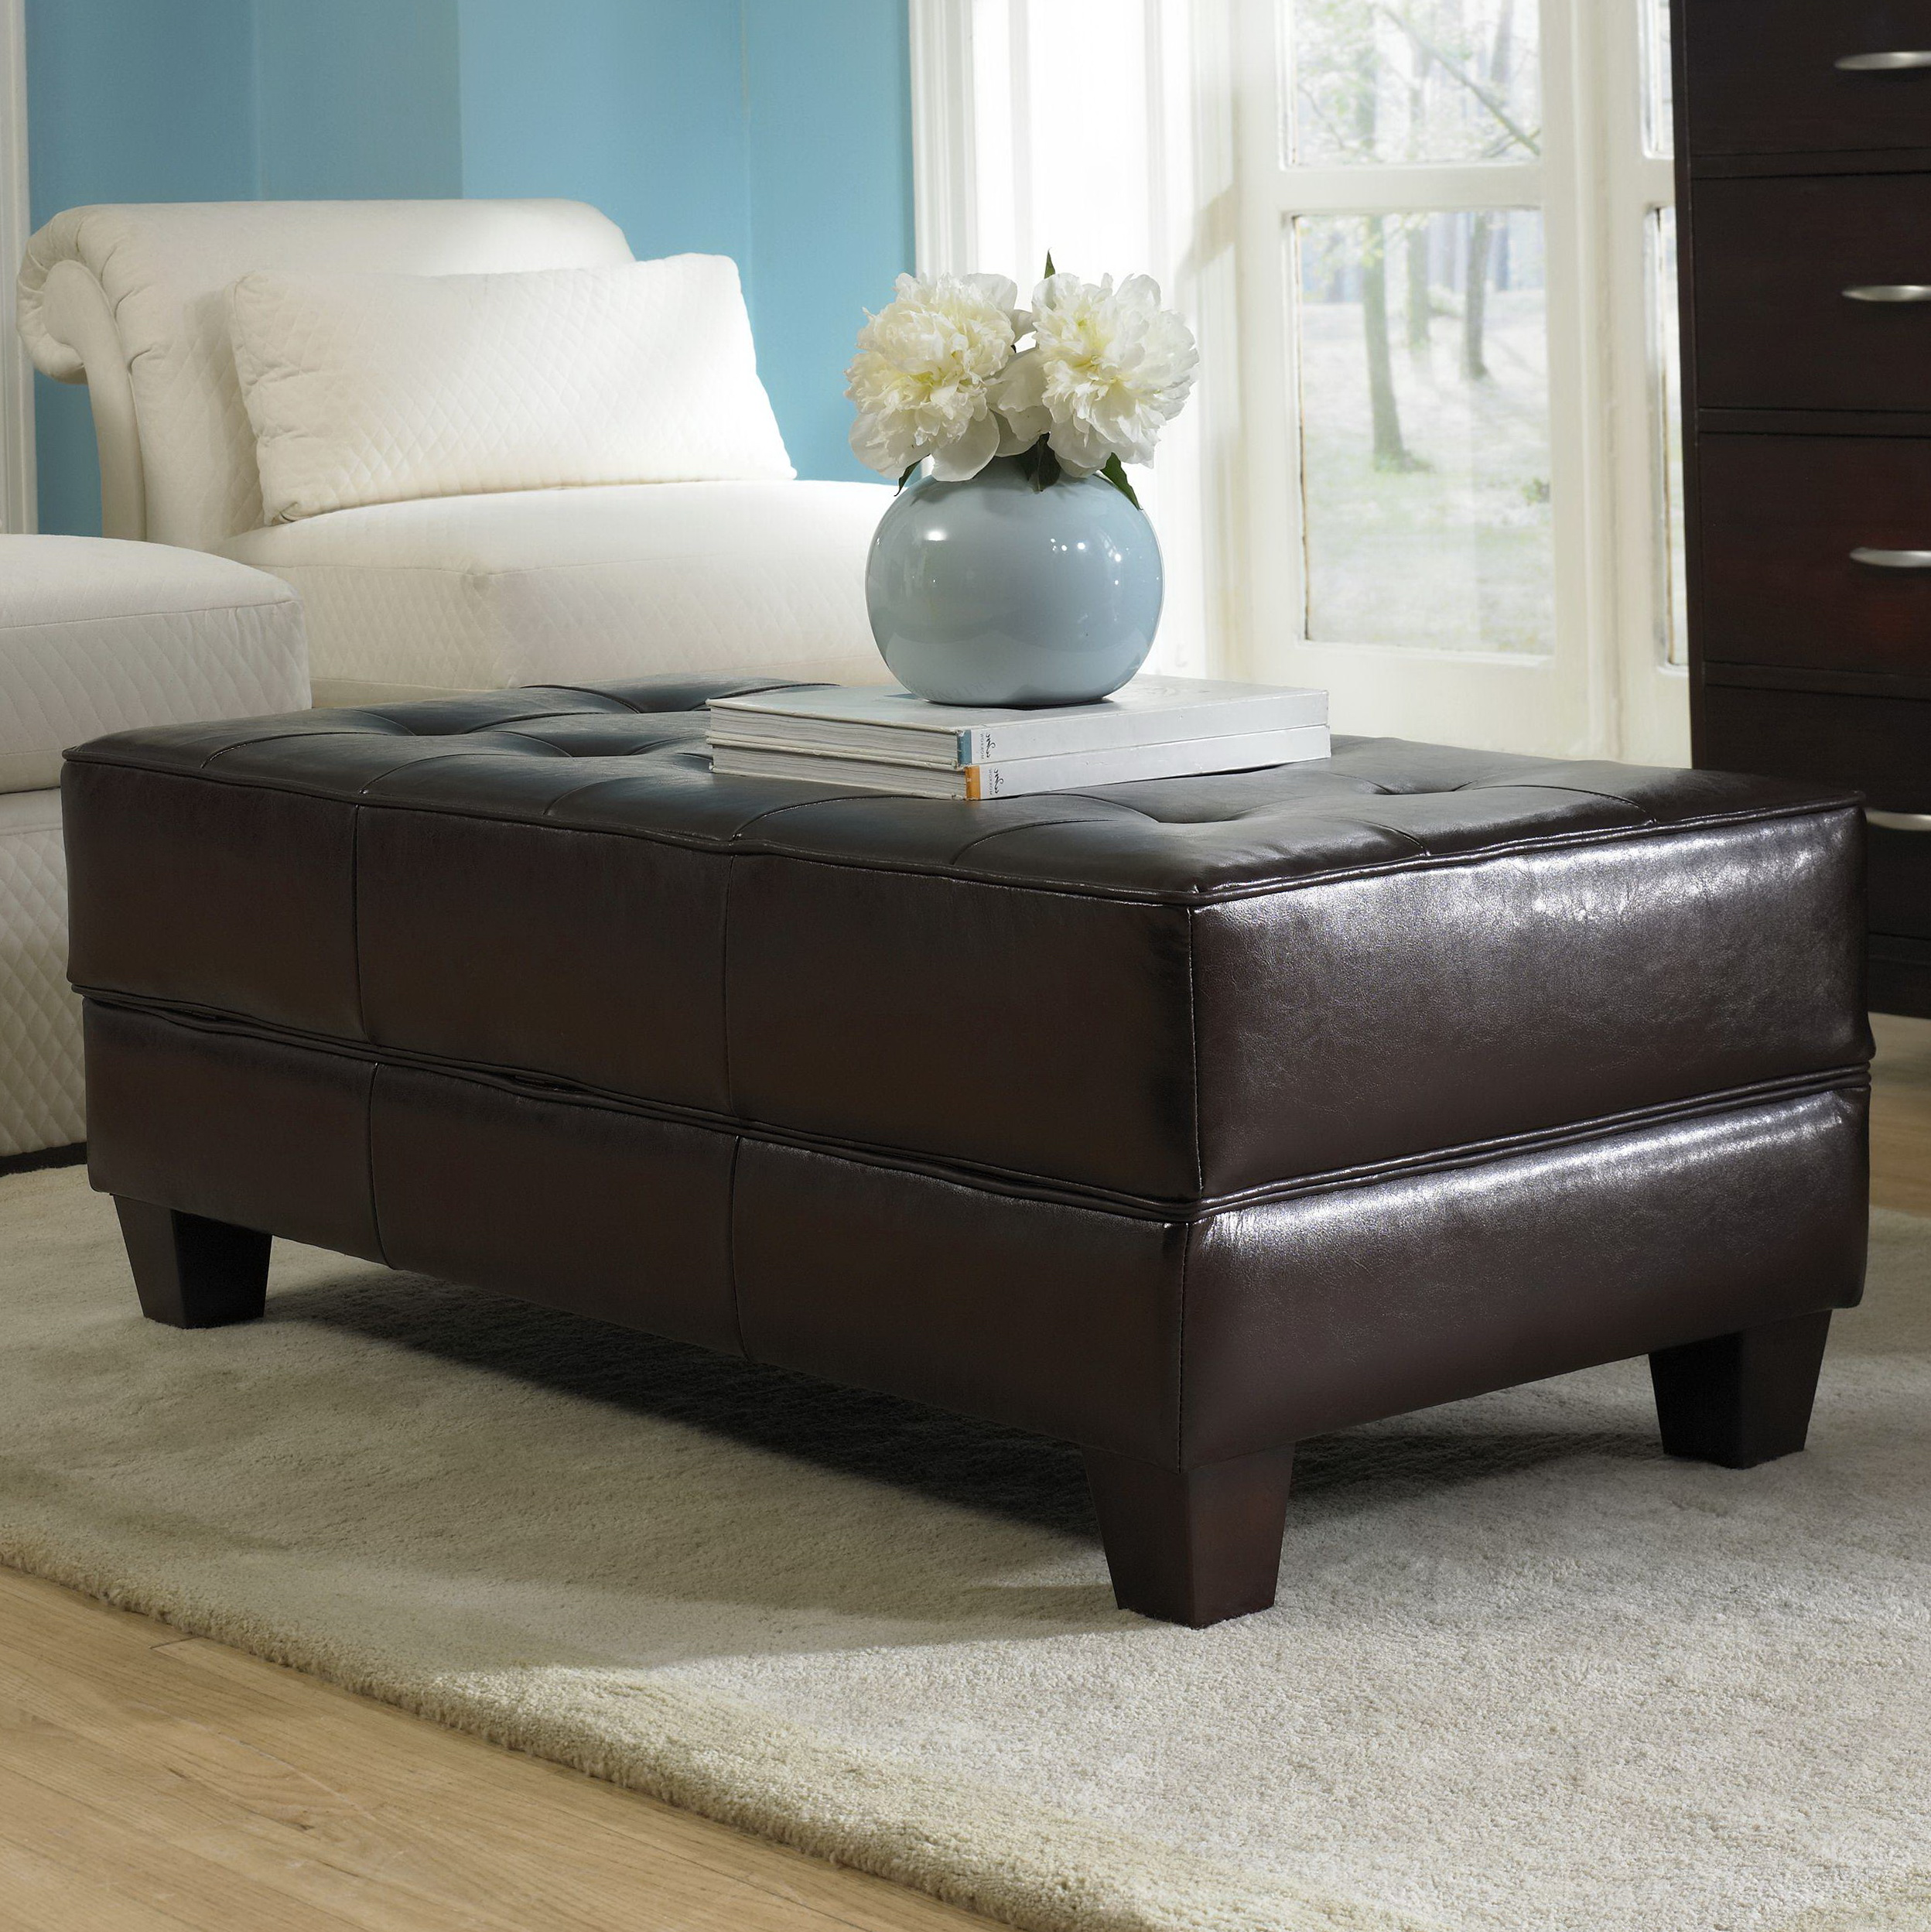 Large Storage Ottoman Leather